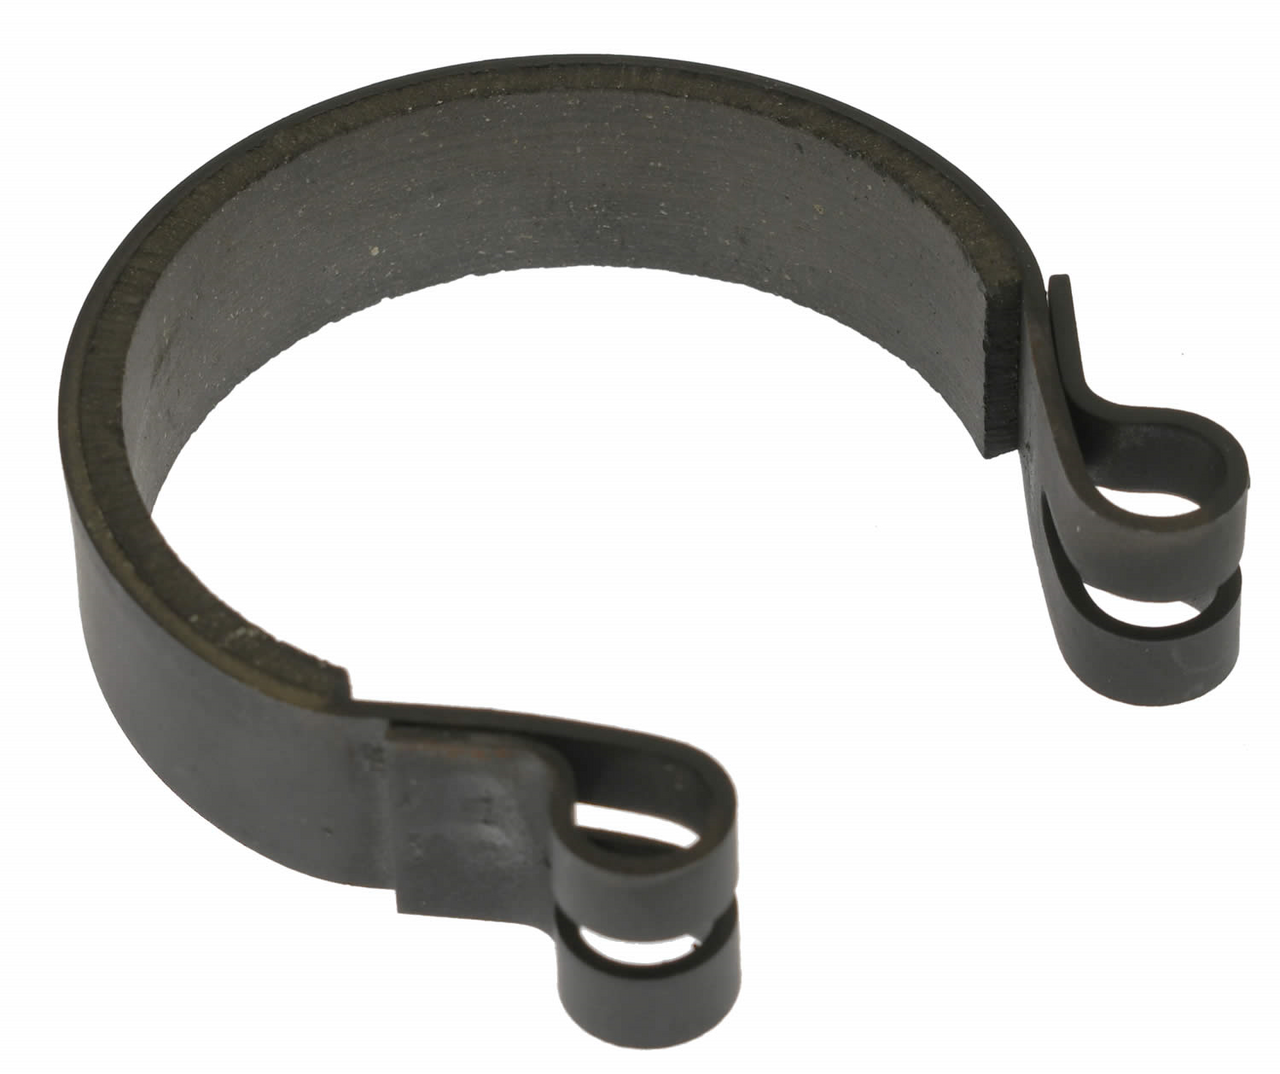 Manco//American Sportworks 4 Brake Band 1036